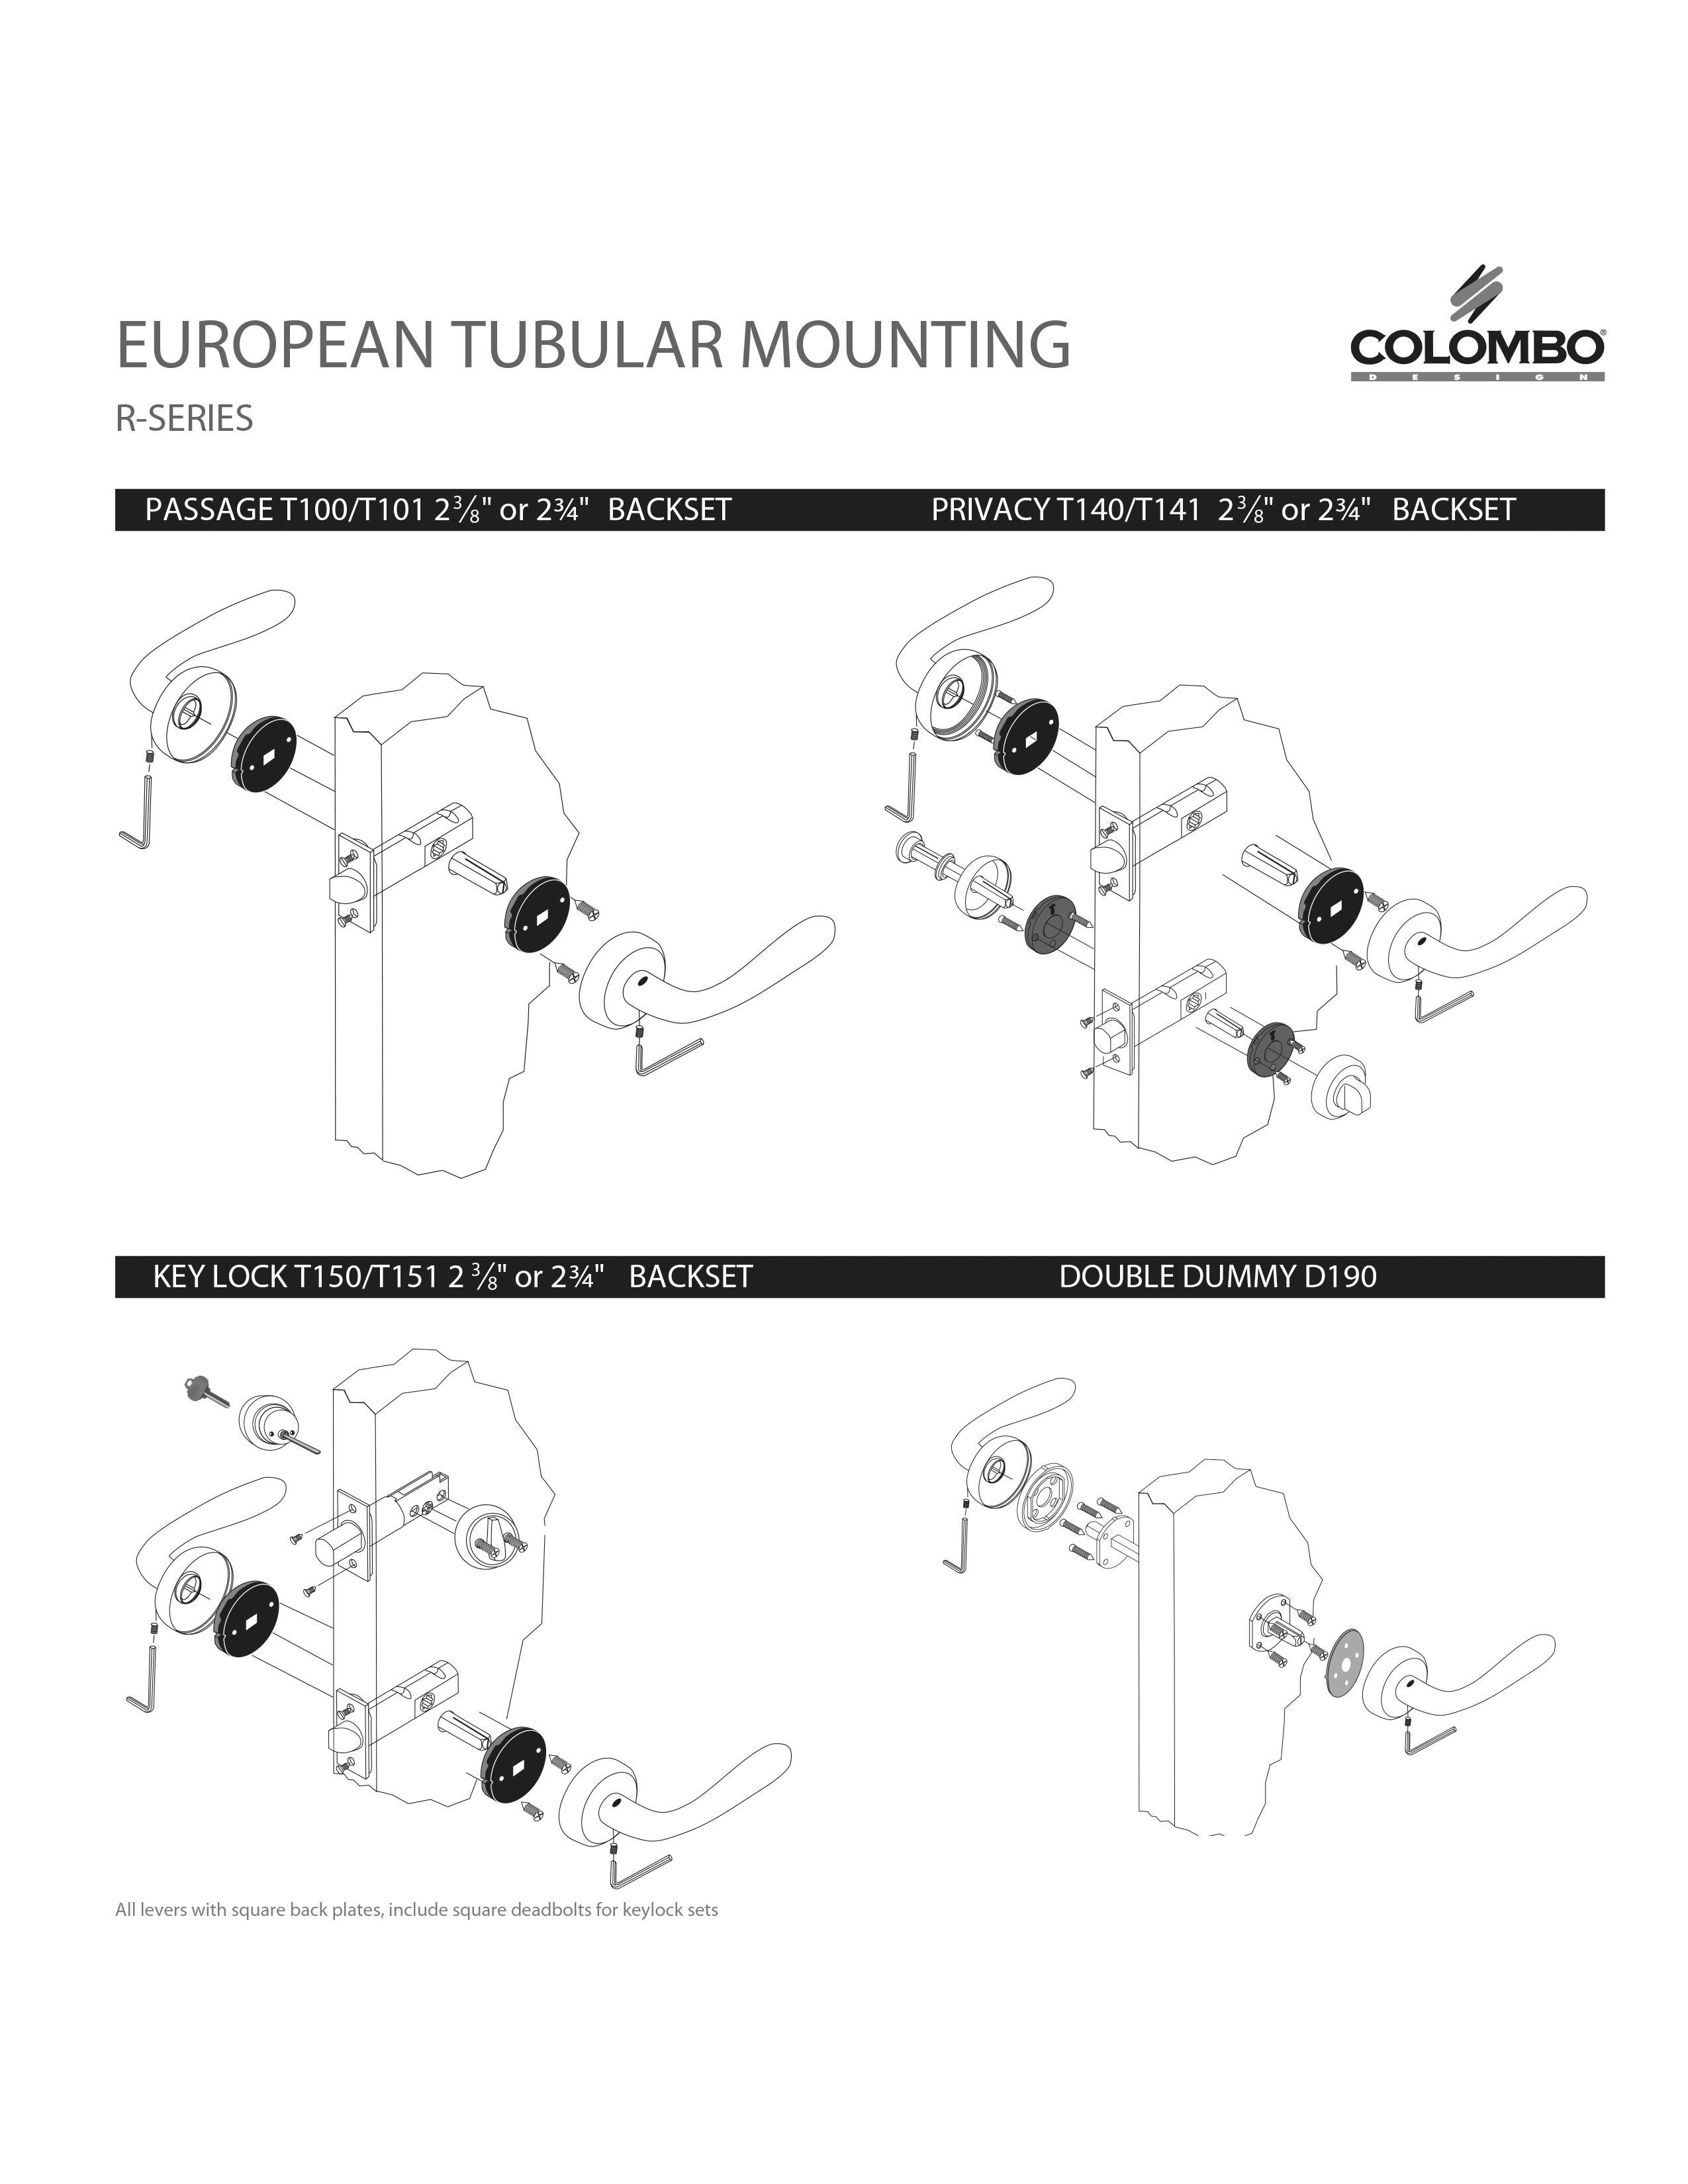 Mounting Drawings for European Tubular Sets